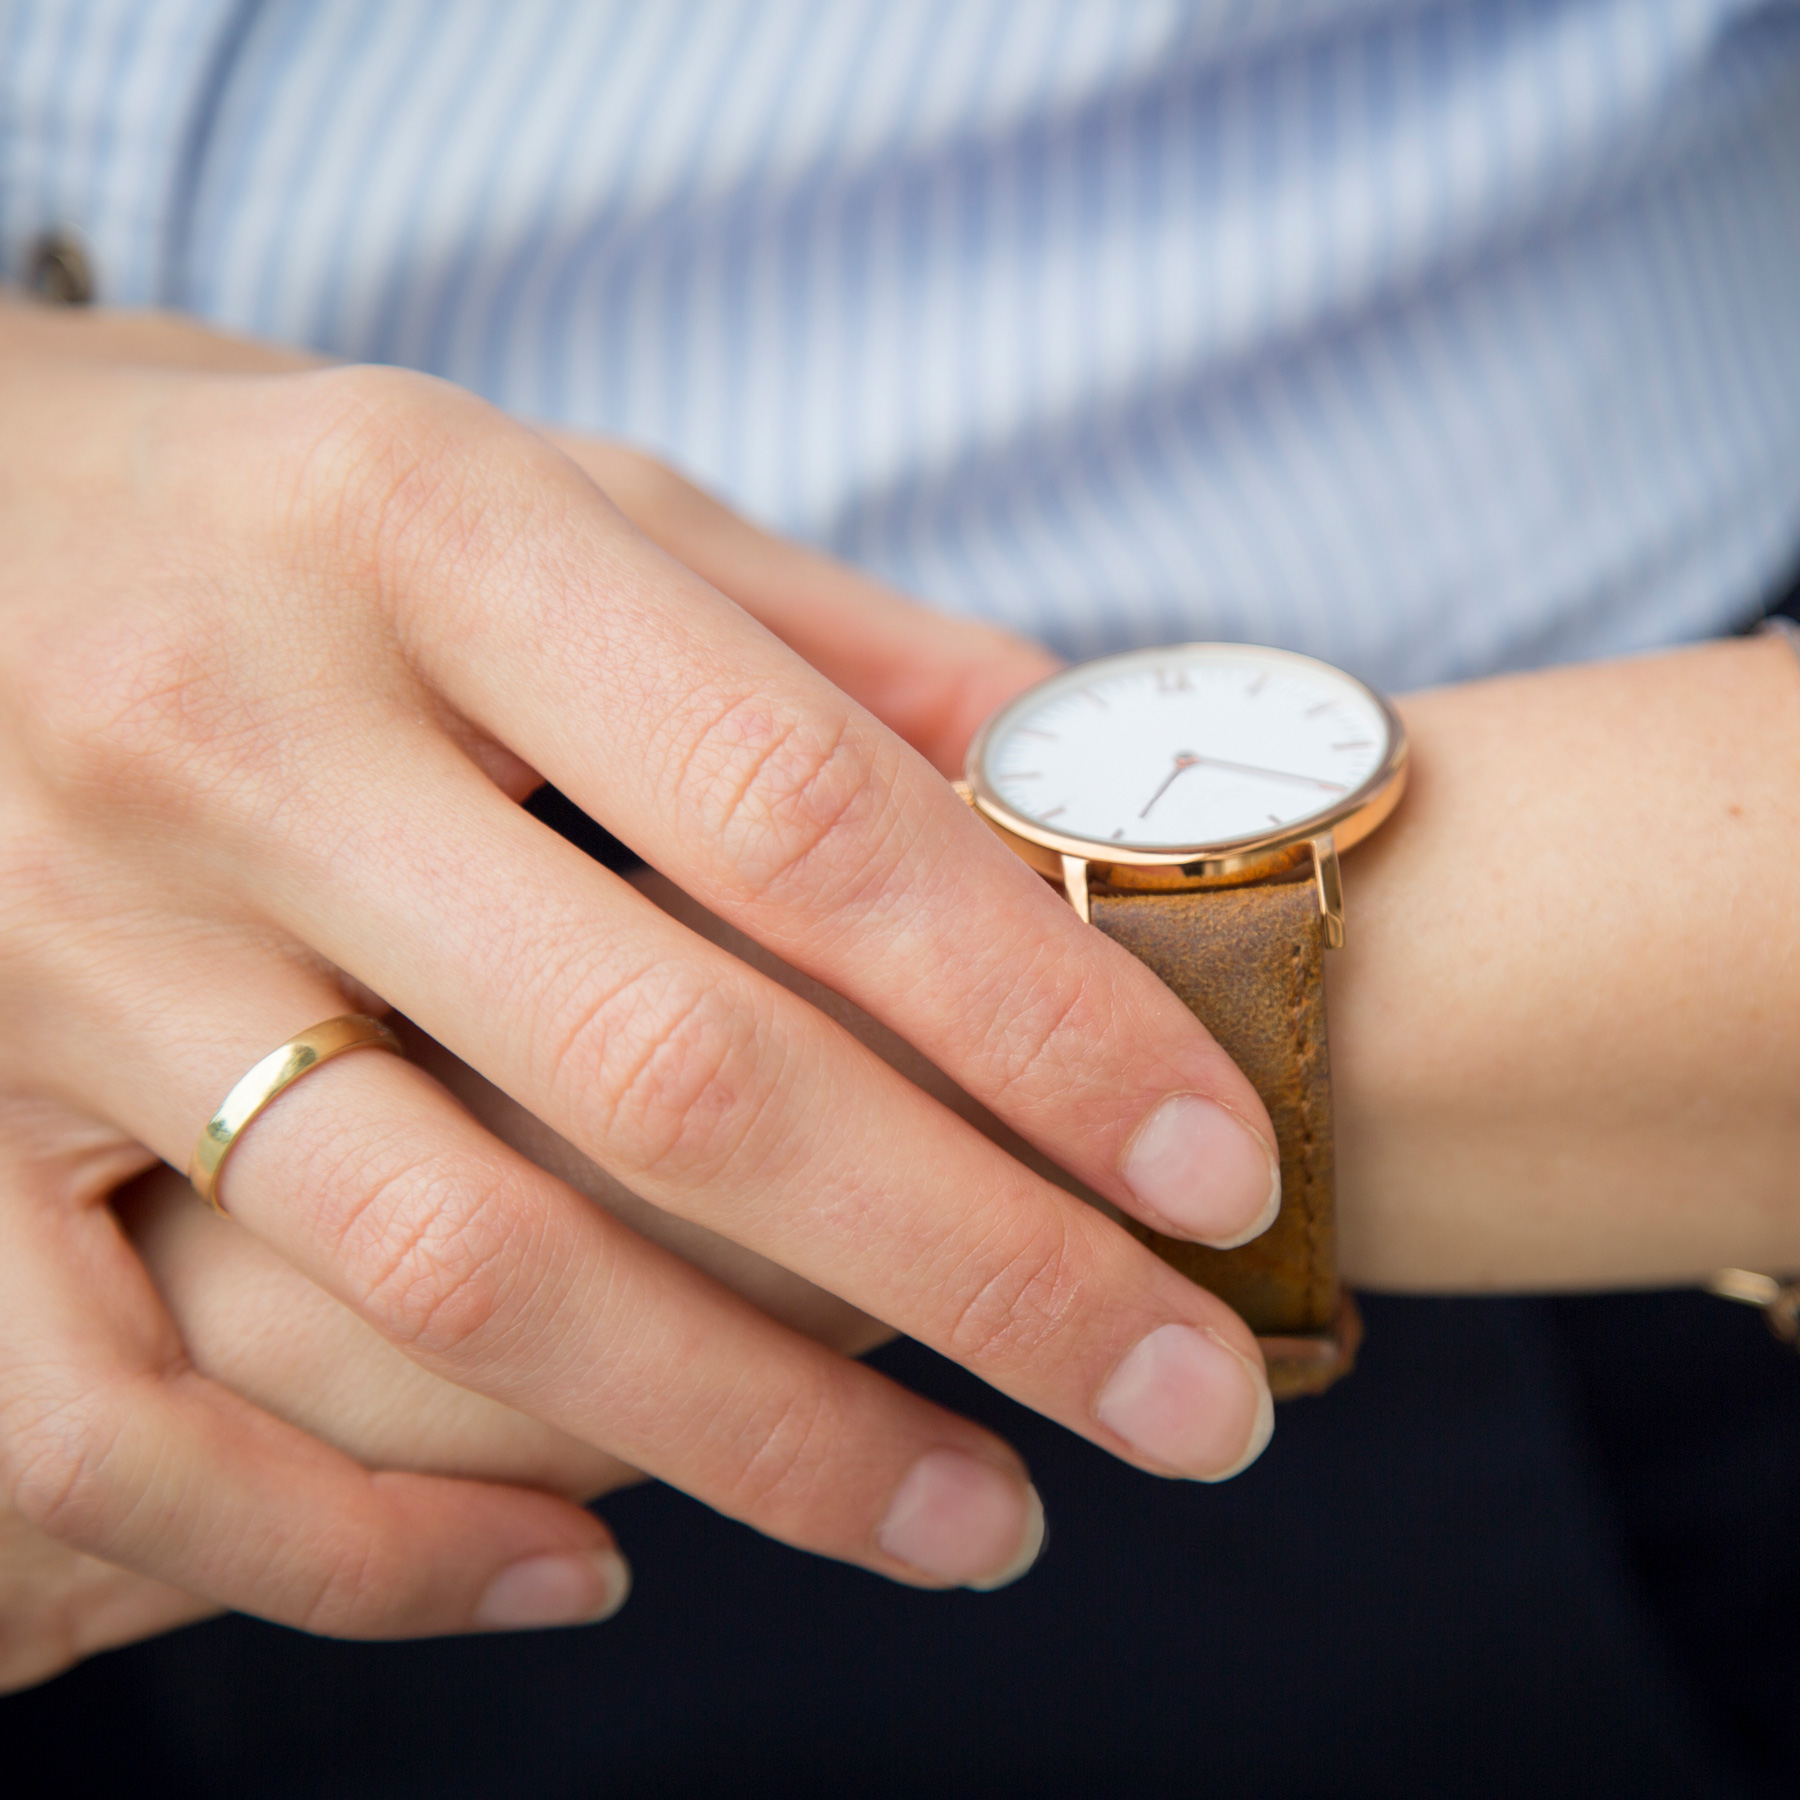 How to break bad habits (always running late), woman checking her watch close up shot